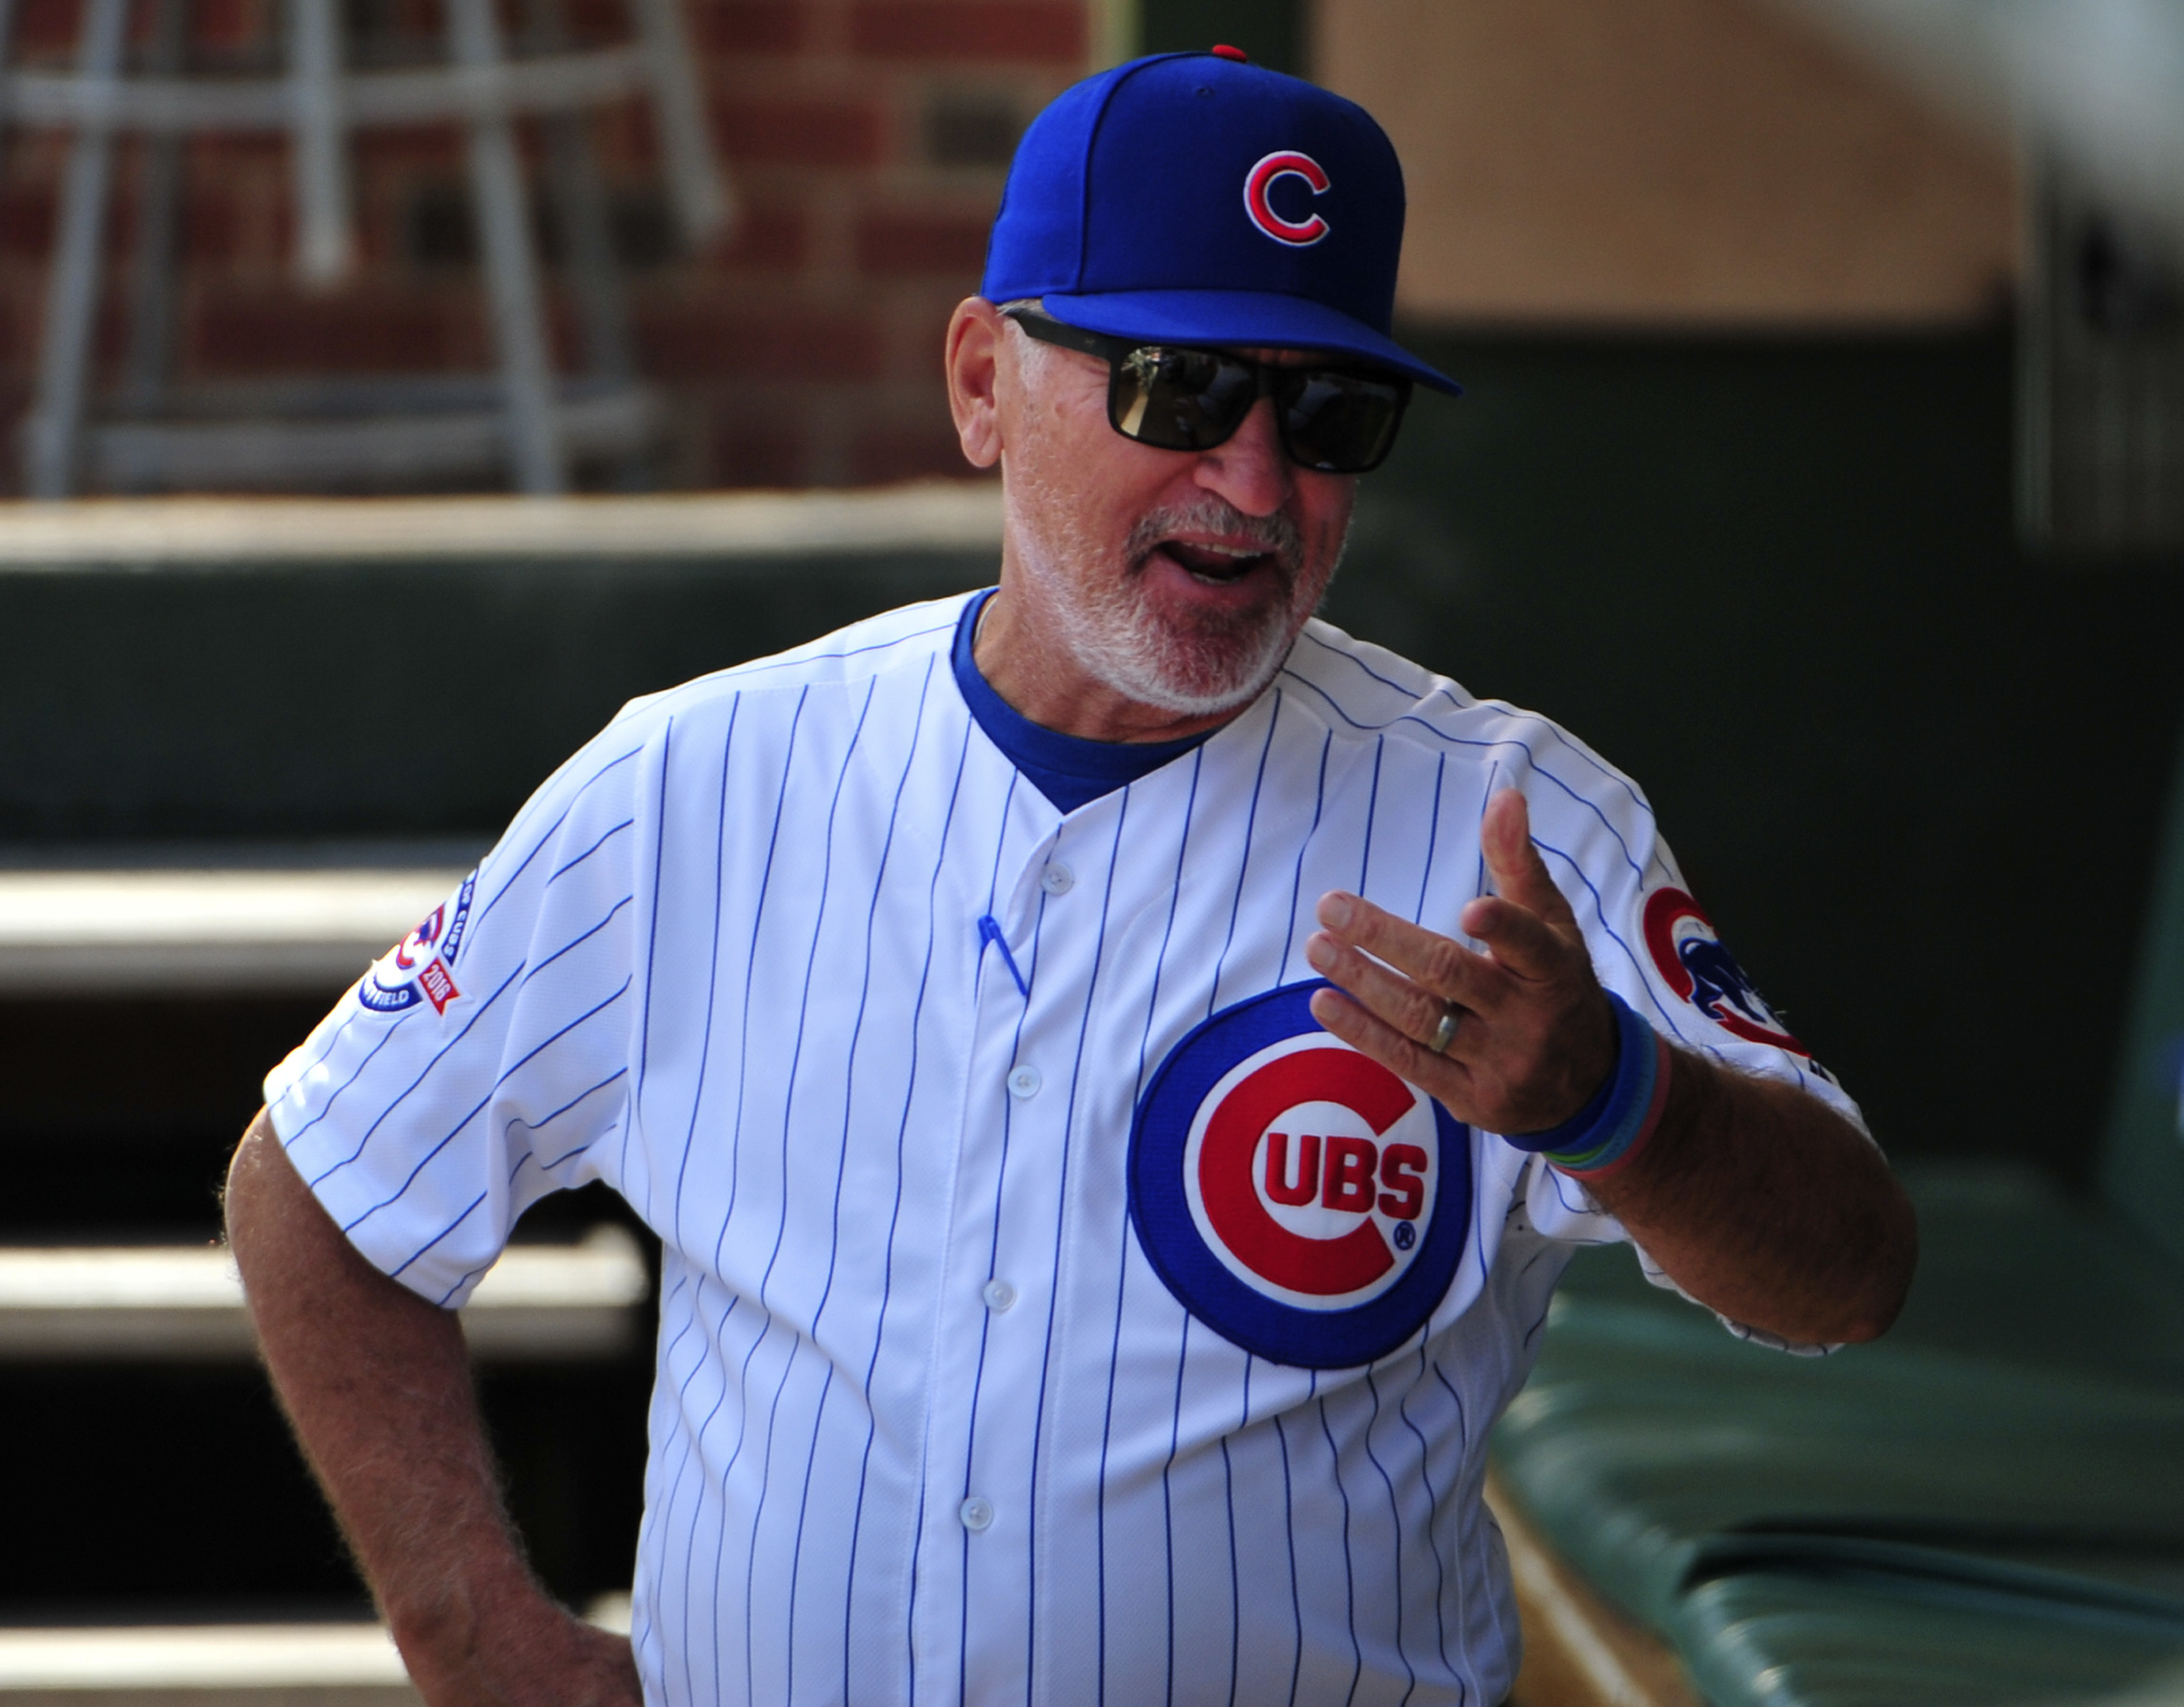 Chicago Cubs manager Joe Maddon talks in the dugout before a baseball game against the Milwaukee Brewers, Sunday, Sept. 18, 2016, in Chicago. (AP Photo/David Banks)